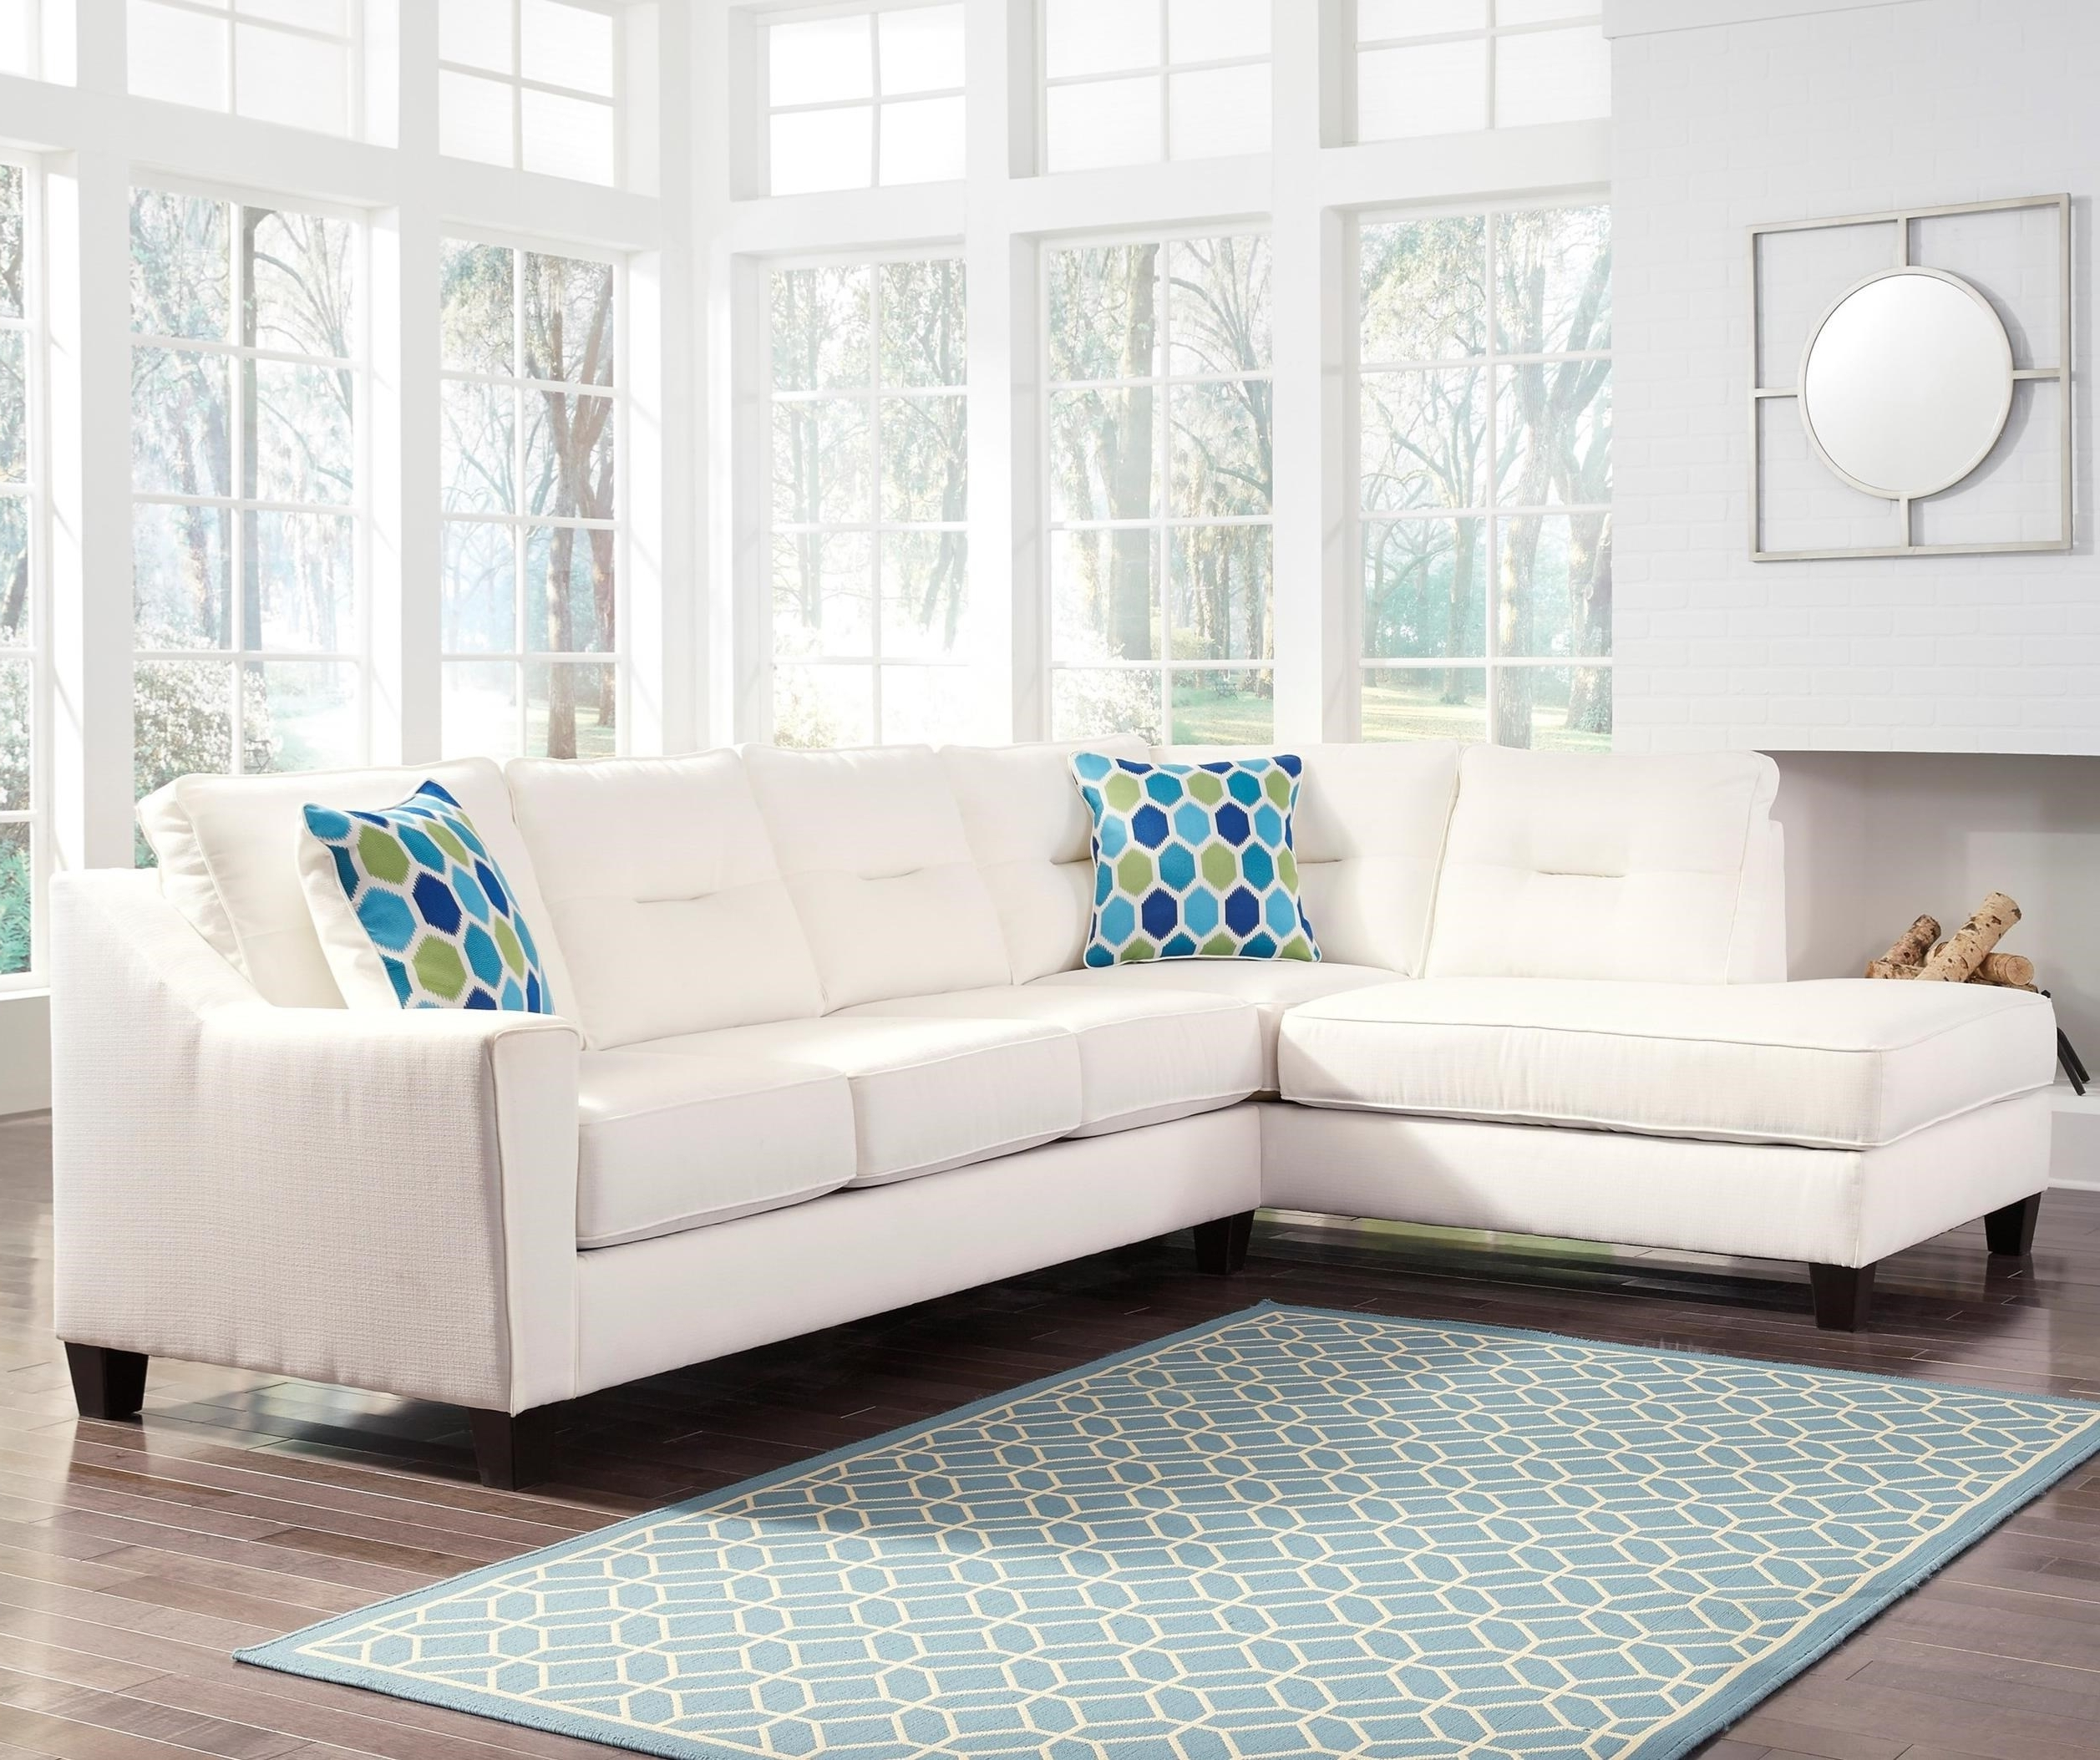 Benchcraft Kirwin Nuvella Sectional With Left Chaise In Intended For Recent East Bay Sectional Sofas (View 19 of 20)